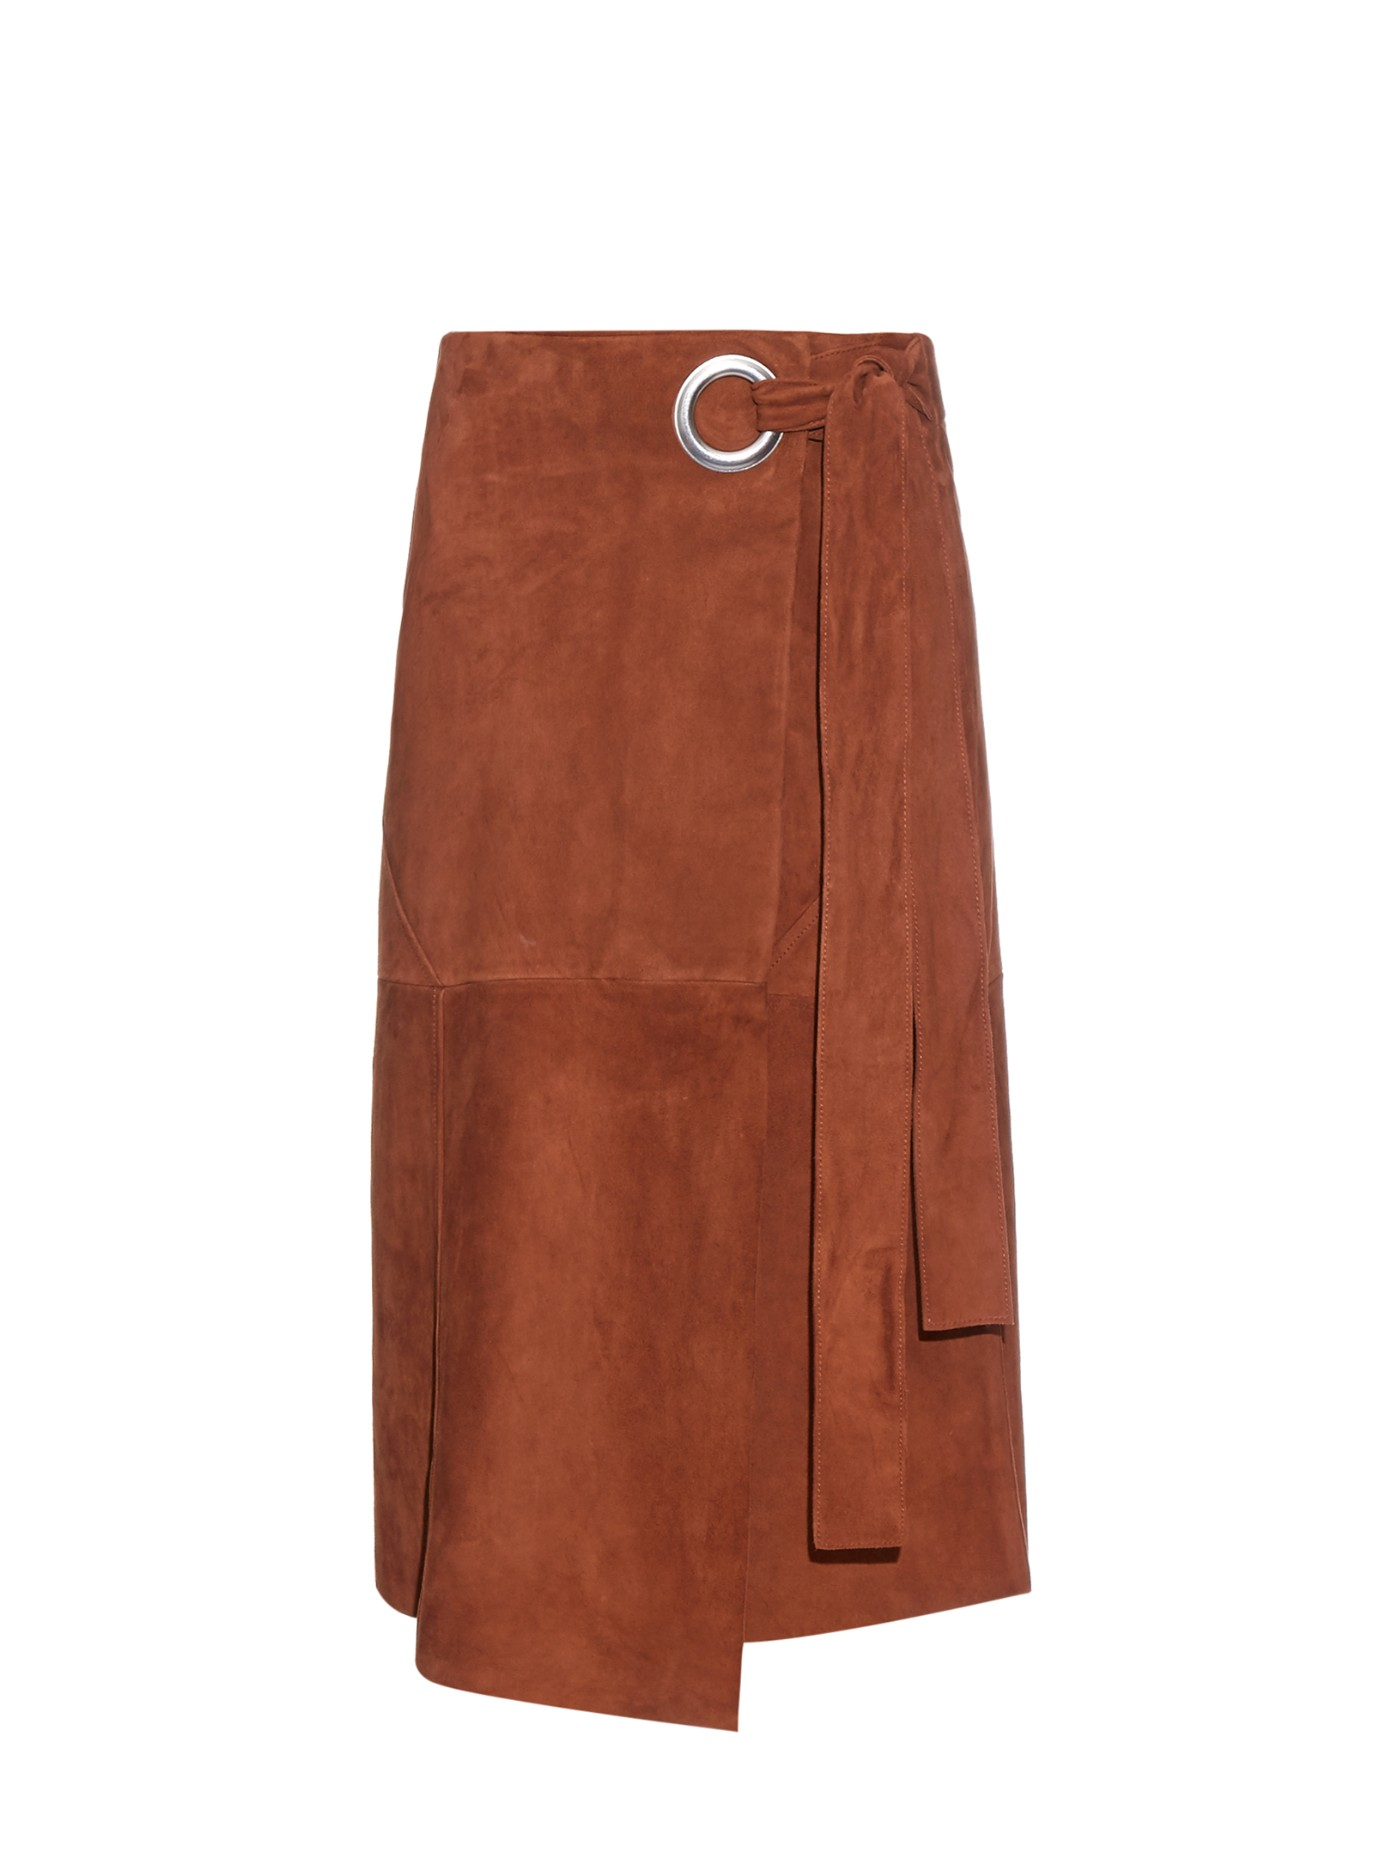 Suede Skirts Fall Fashion Trend 2018